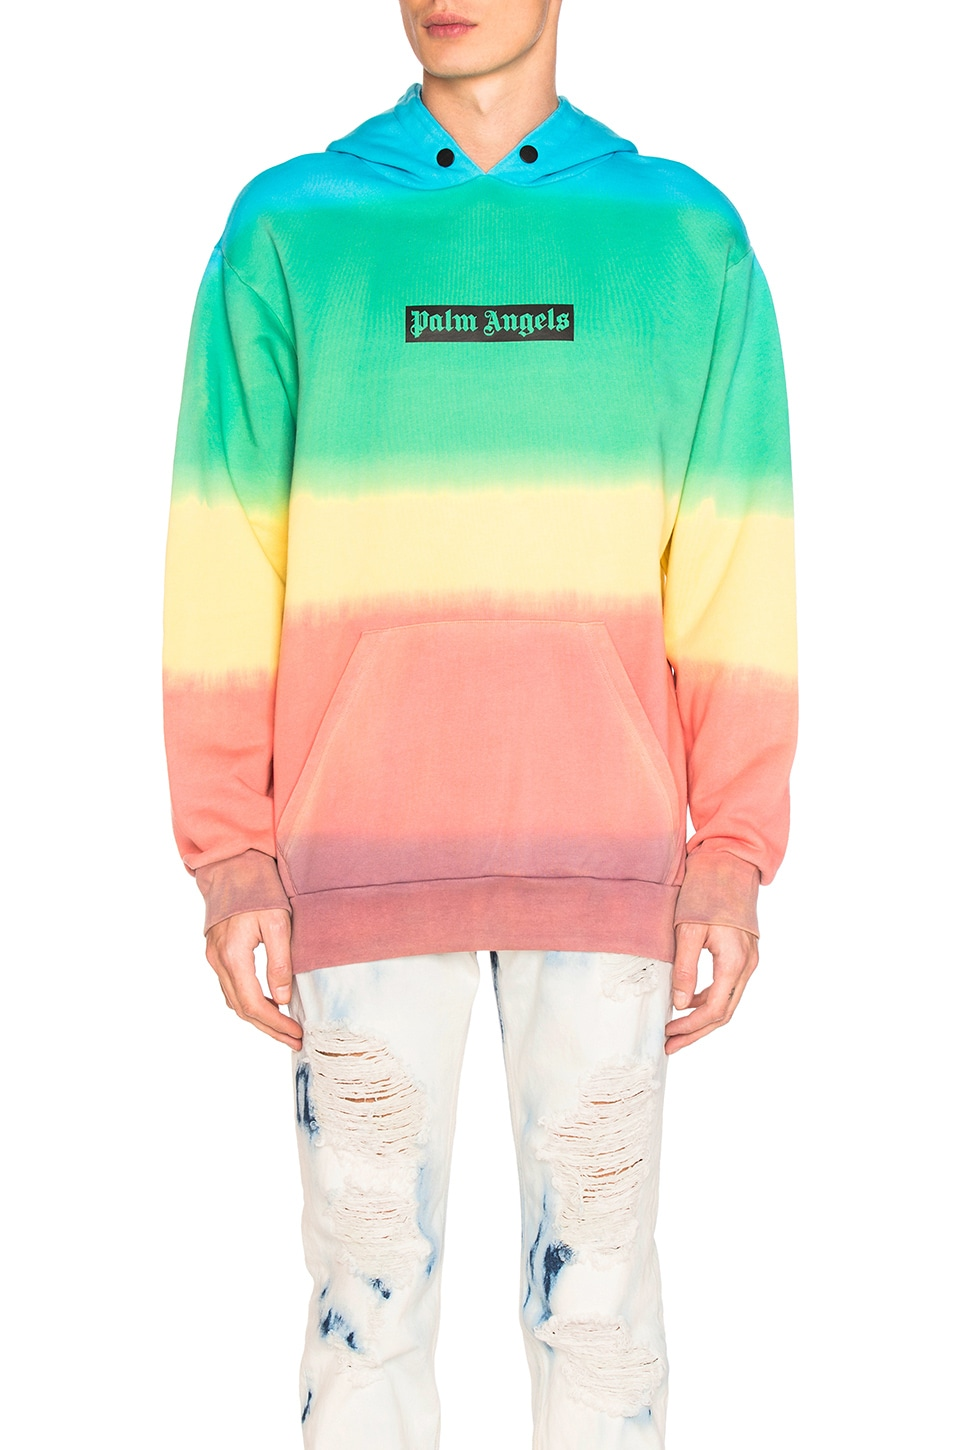 Rainbow Tie Dye Hoody by Palm Angels